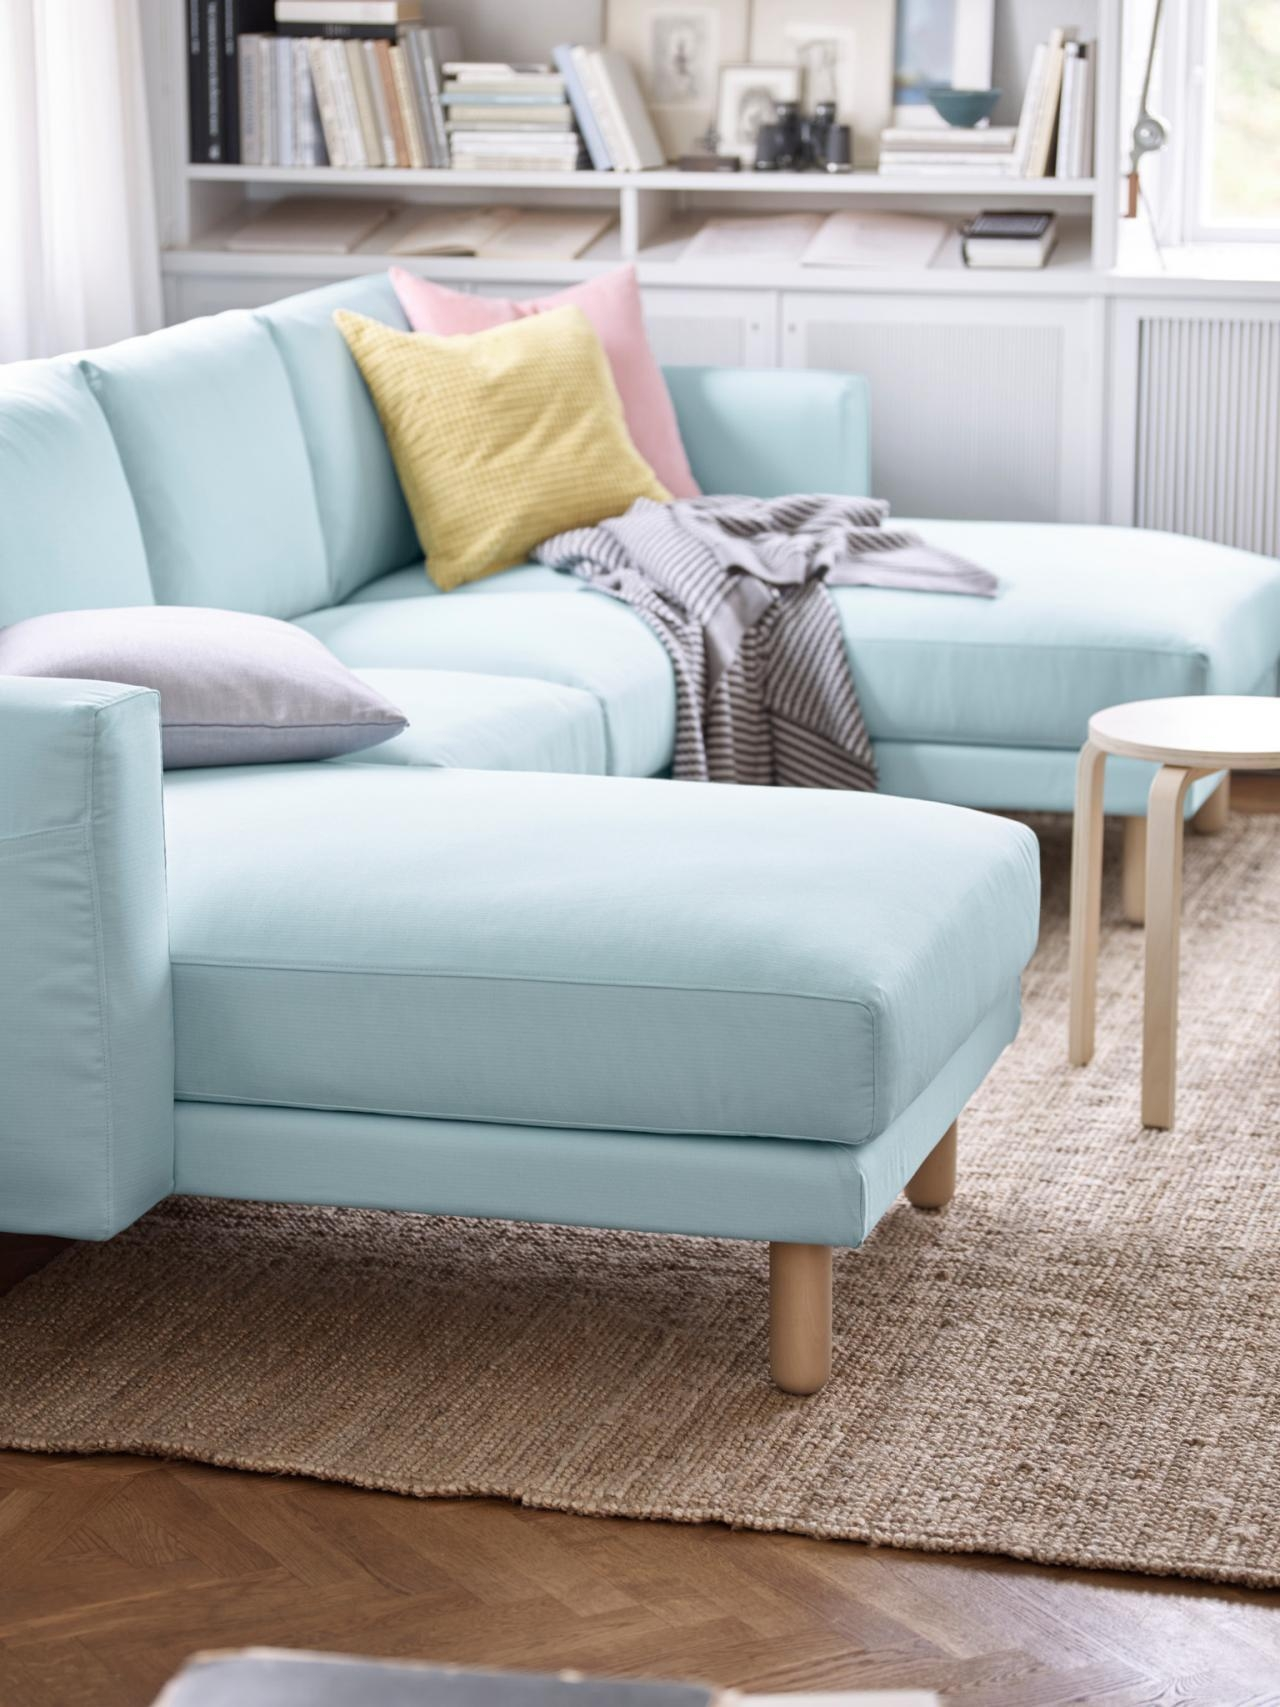 5 Apartment Sized Sofas That Are Lifesavers | Hgtv's Decorating Within Apartment Size Sofas And Sectionals (Photo 3 of 15)